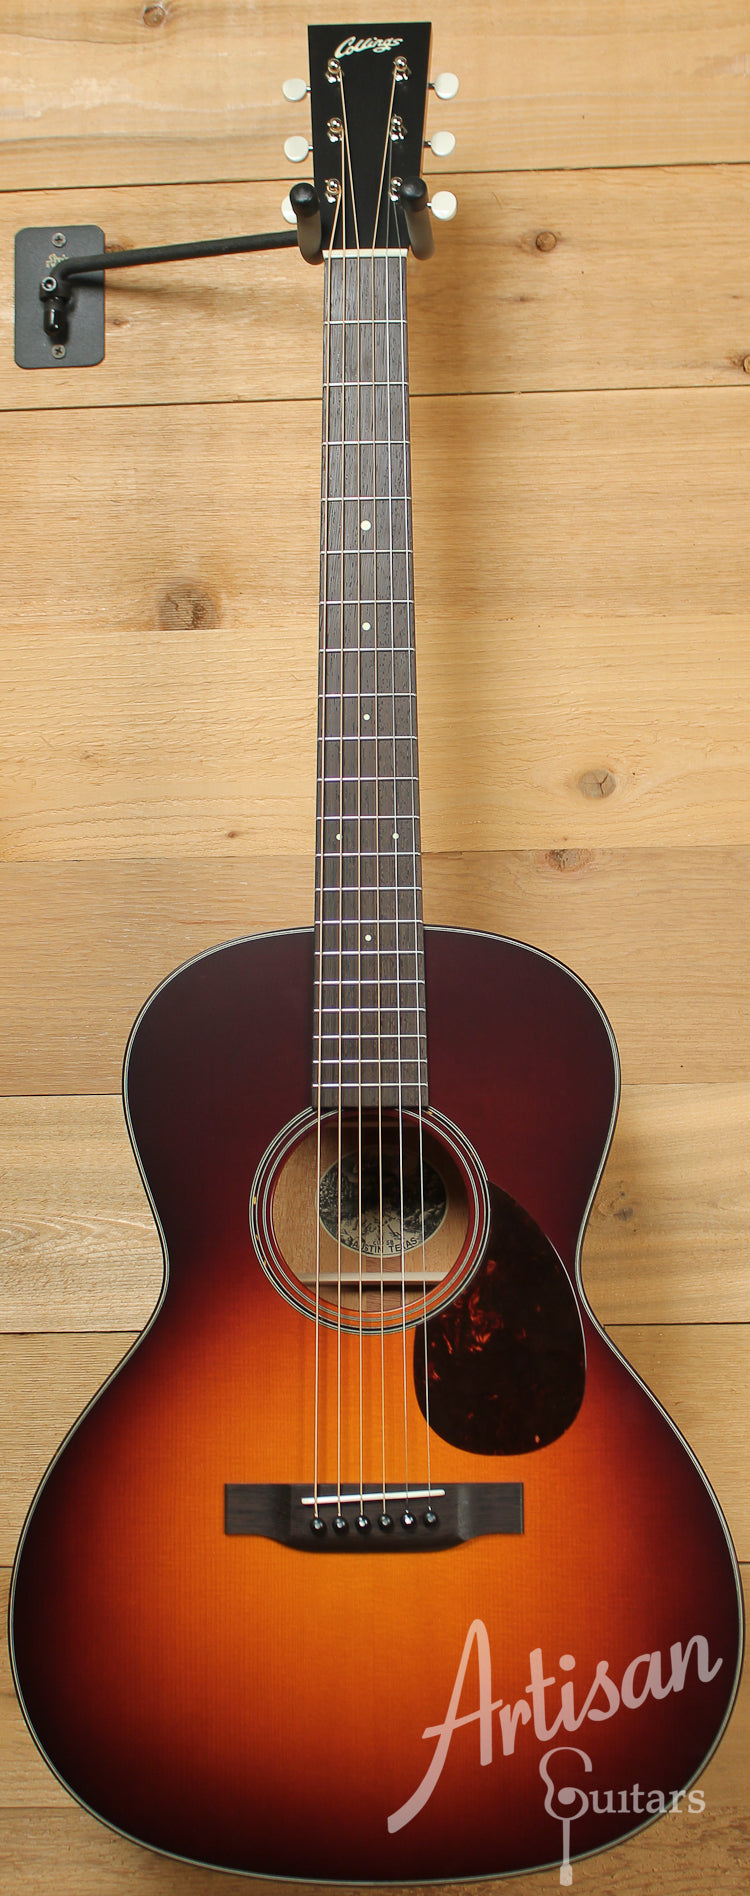 Collings C 10 Sitka Spruce and Mahogany with Deep Body ID-7769 - Artisan Guitars